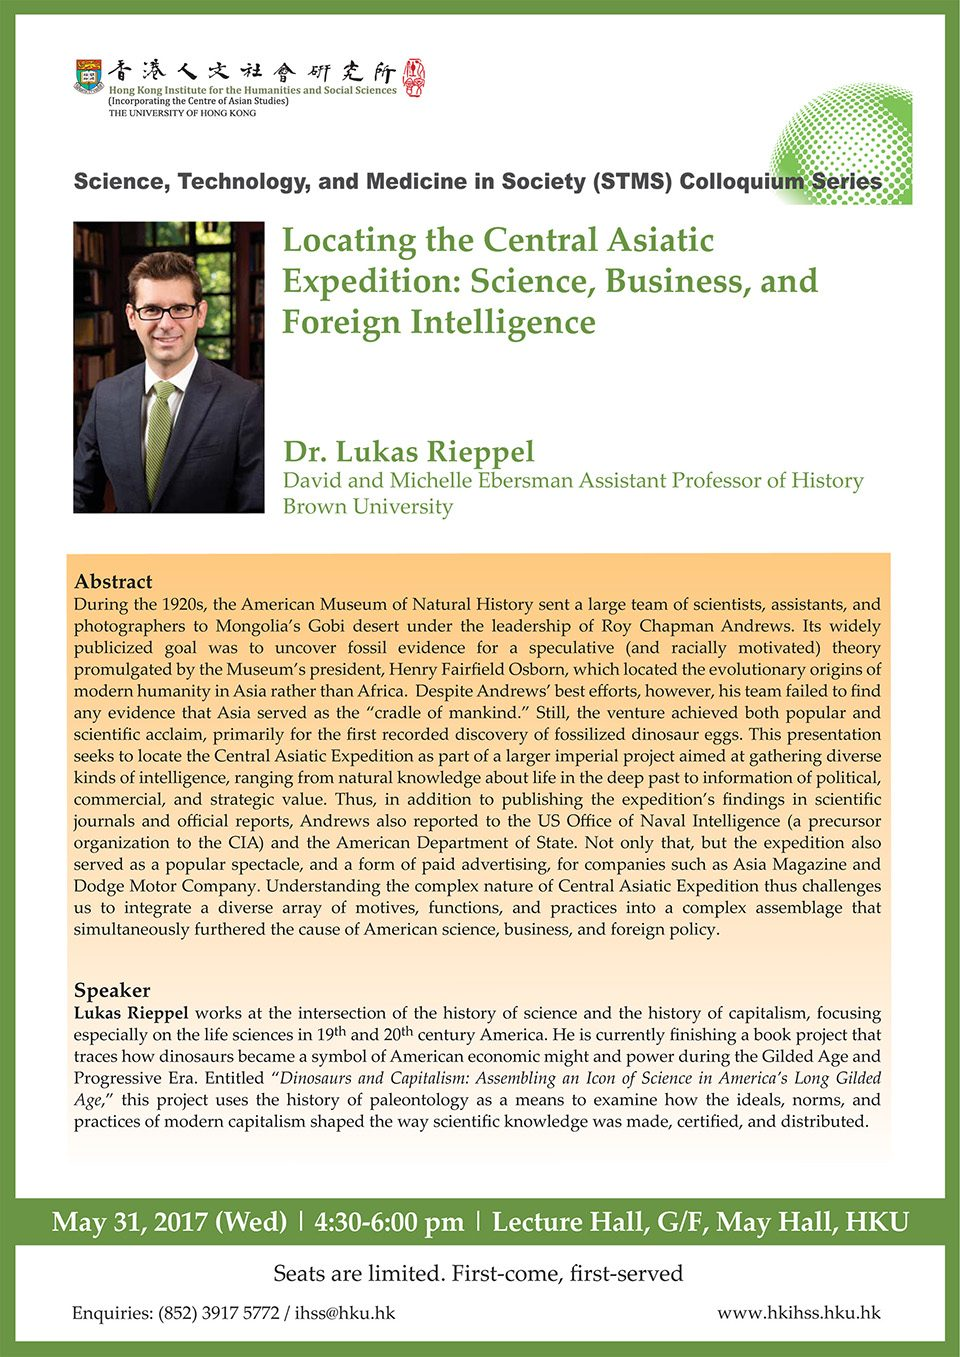 "Science, Technology, and Medicine in Society (STMS) Colloquium Series ""Locating the Central Asiatic Expedition: Science, Business, and Foreign Intelligence"" by Dr. Lukas Rieppel (May 31, 2017)"